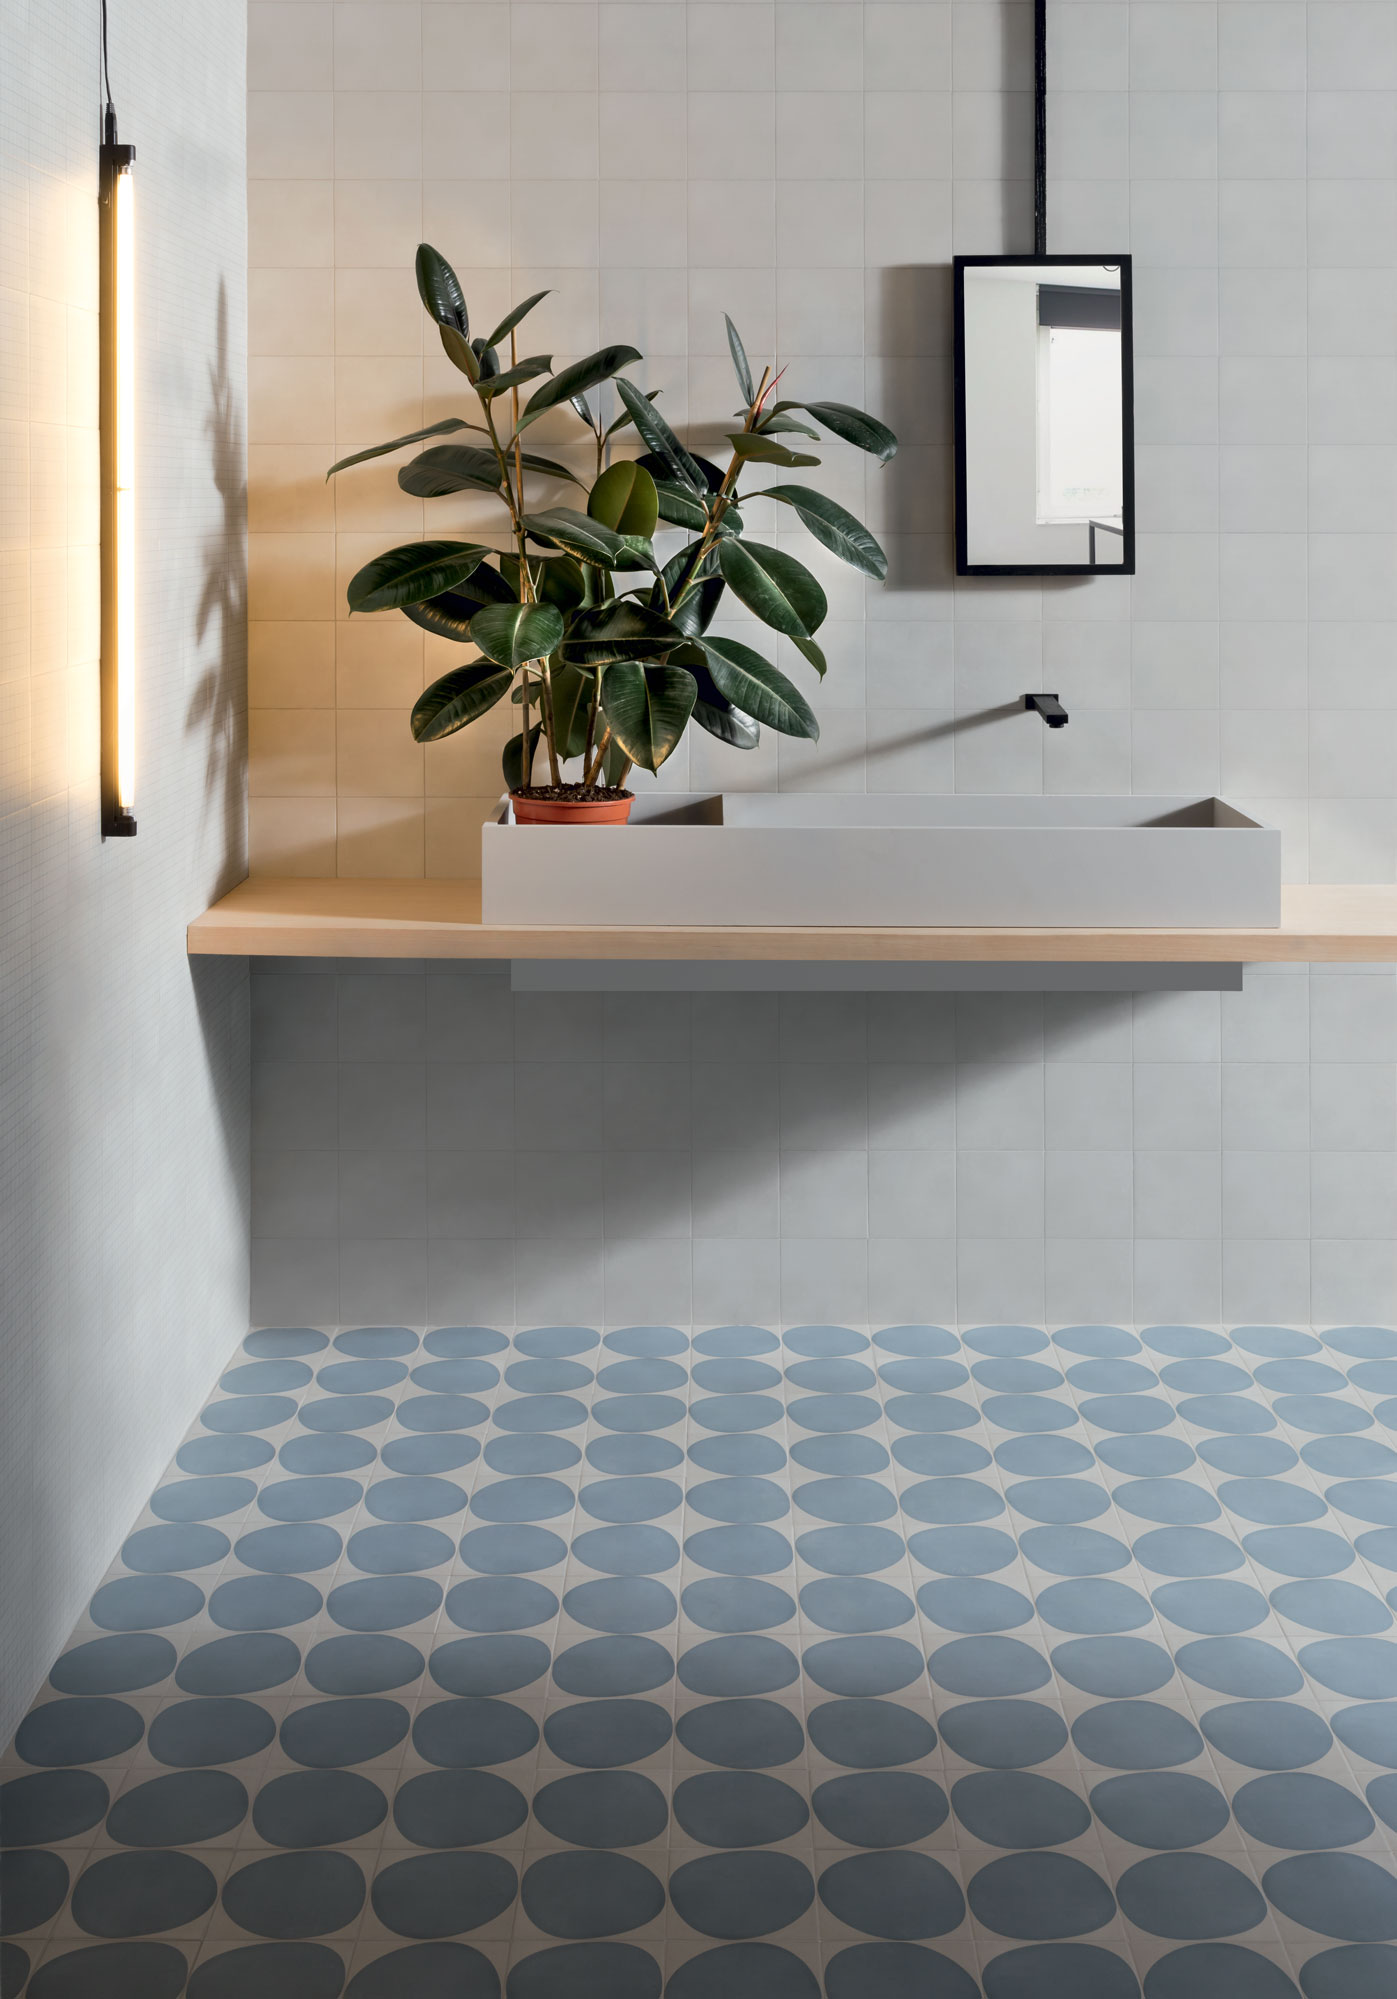 "Wall Futura Grid Blue / Futura Grey - Floor Futura Drop Blue 15x15 6""x6"""